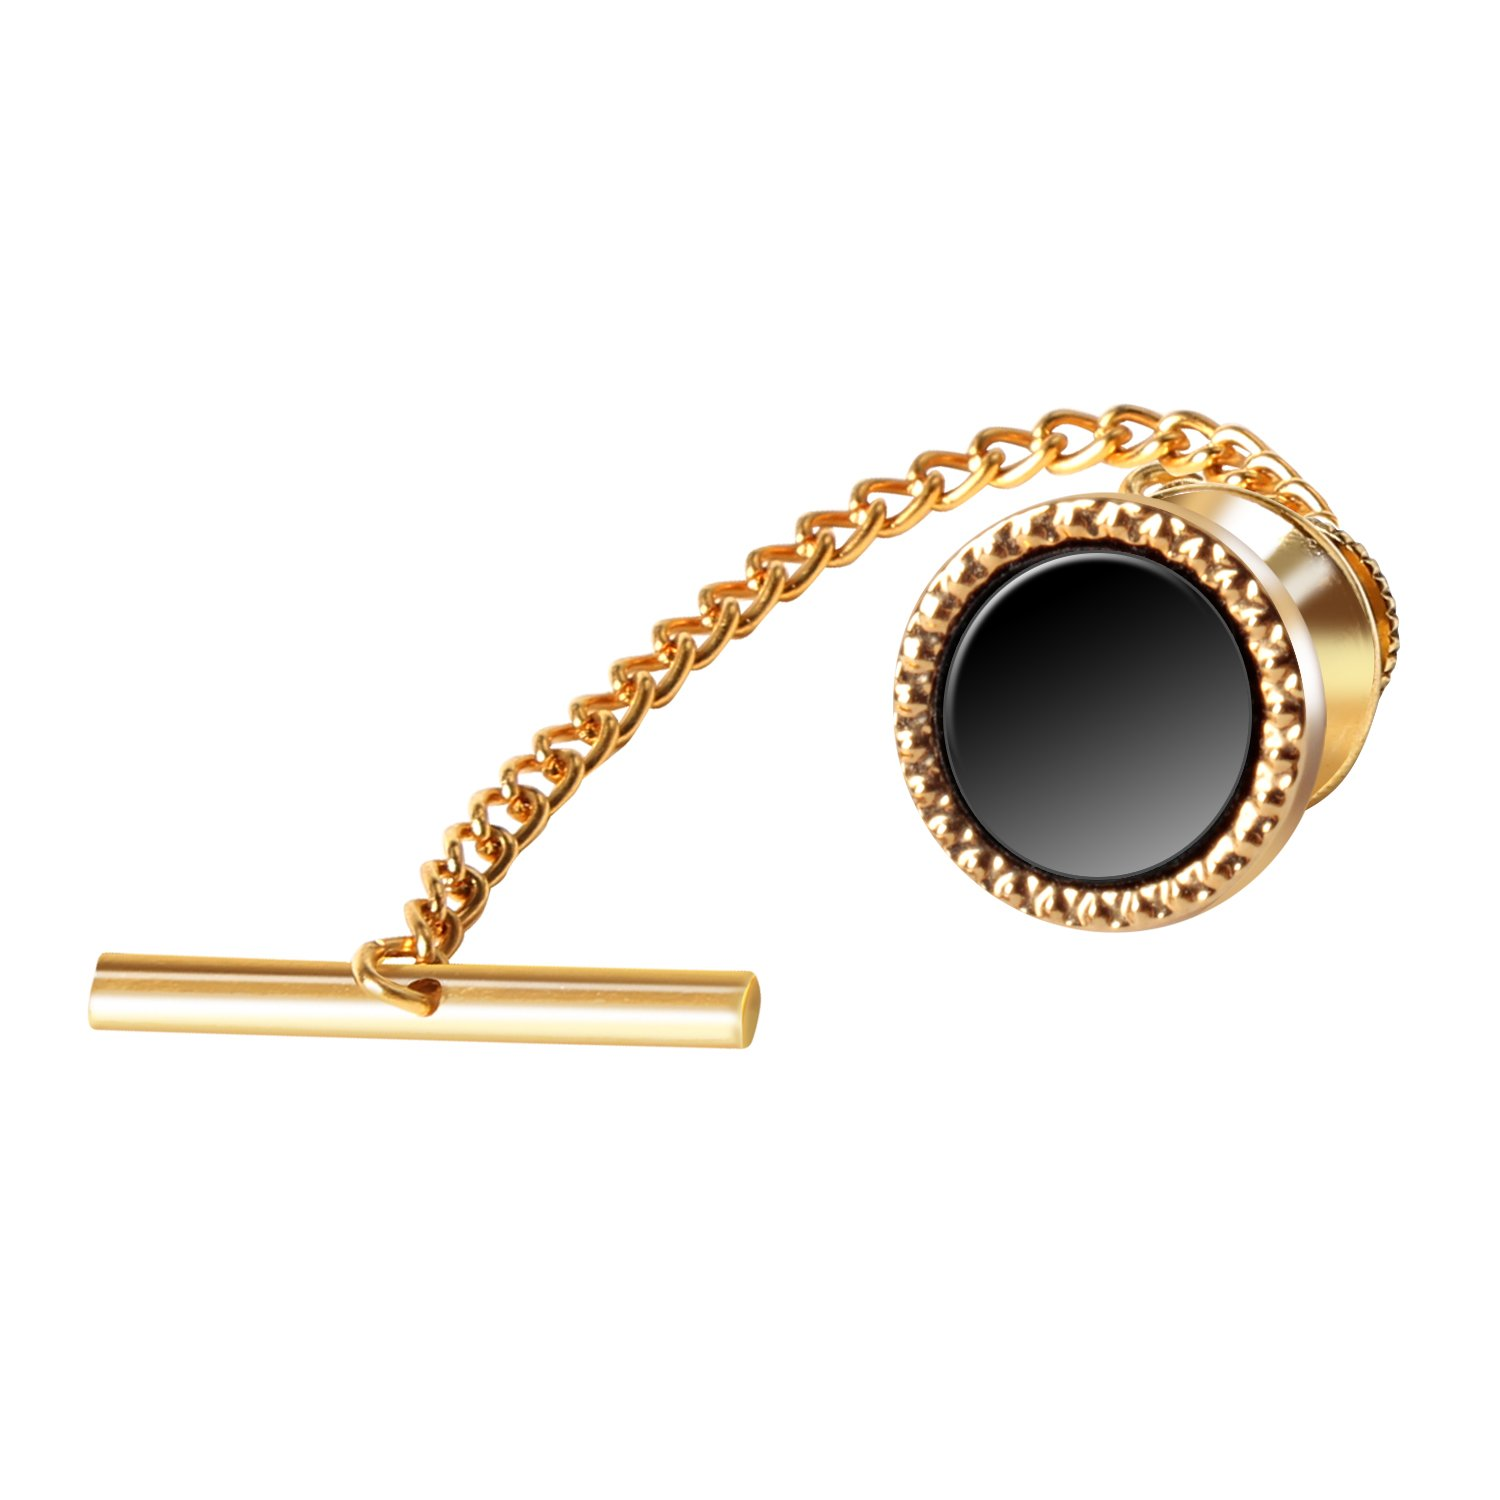 Digabi Men's Jewelry Round Black 10mm Tie Tack With Chains and Clutch Back Tie Clip Button Golden